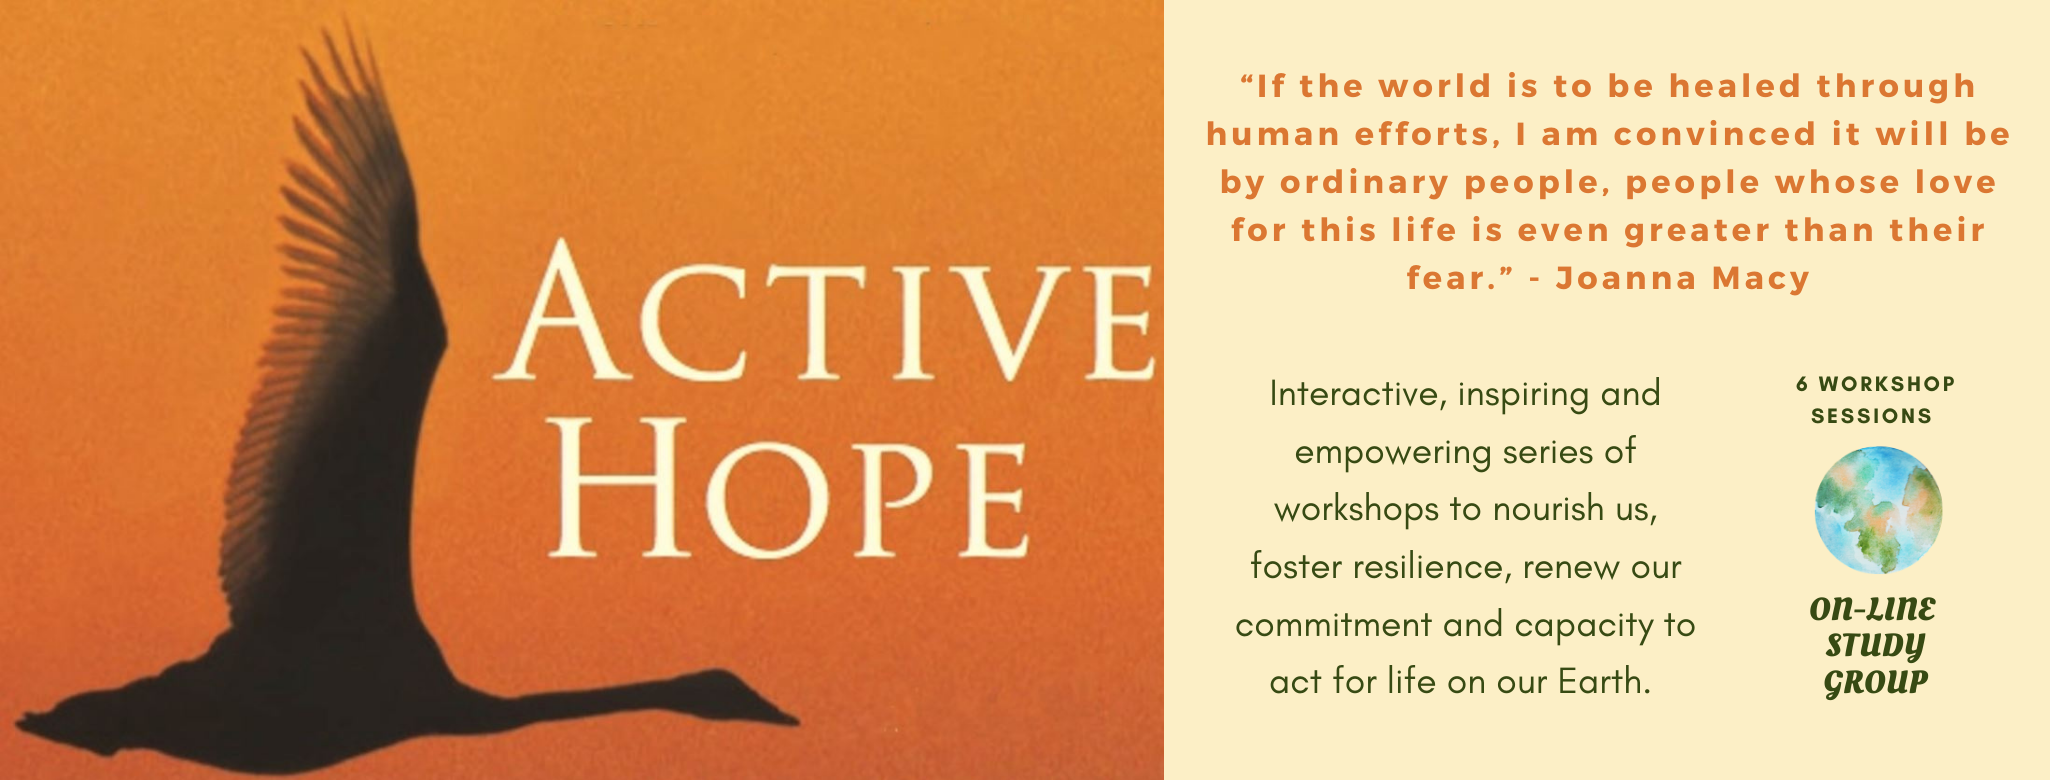 Active Hope Study Group-FB long cover